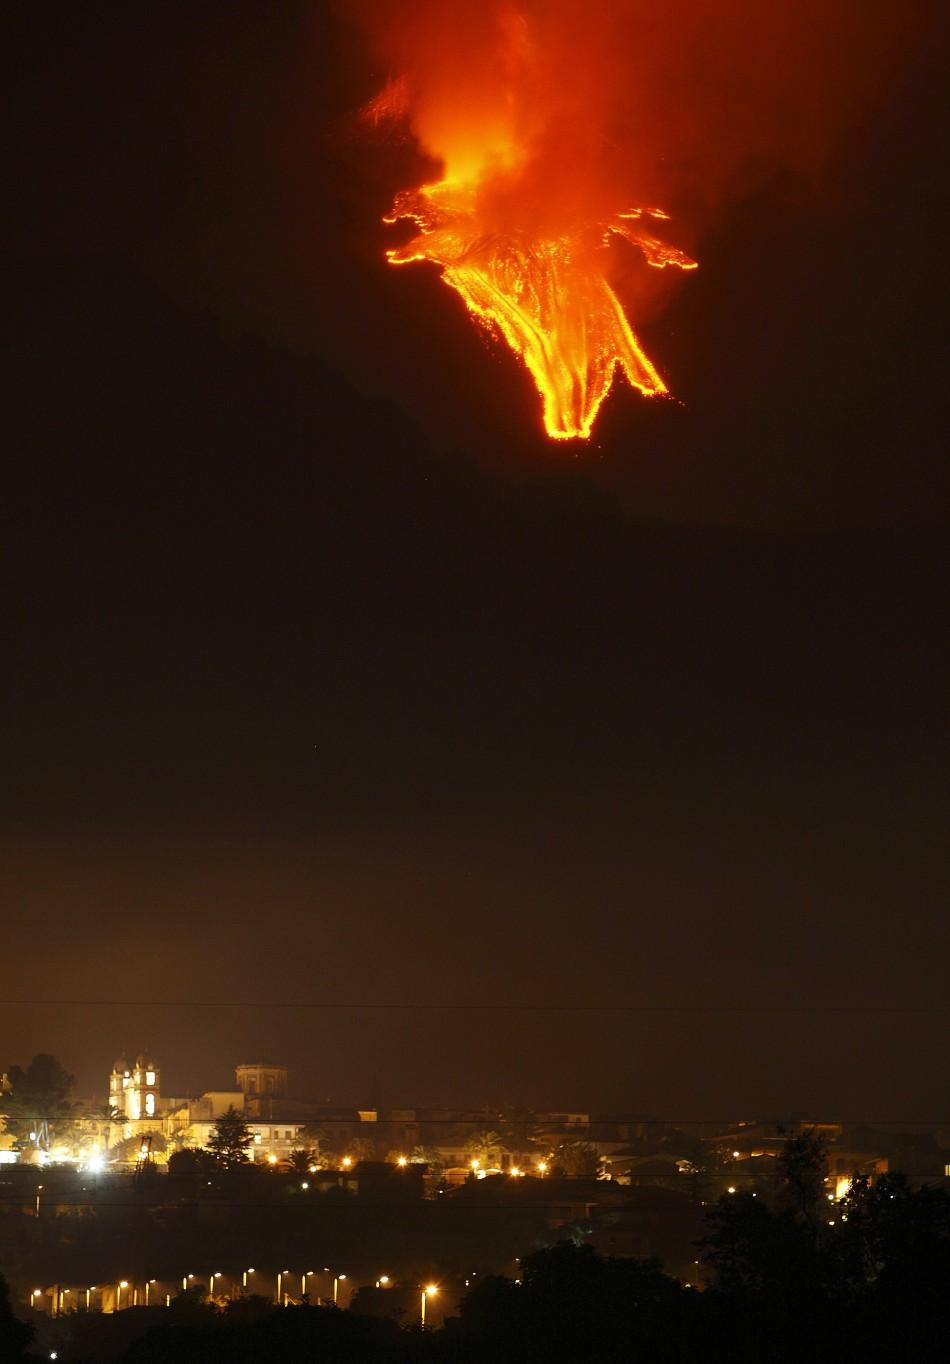 Mount Etna spews lava